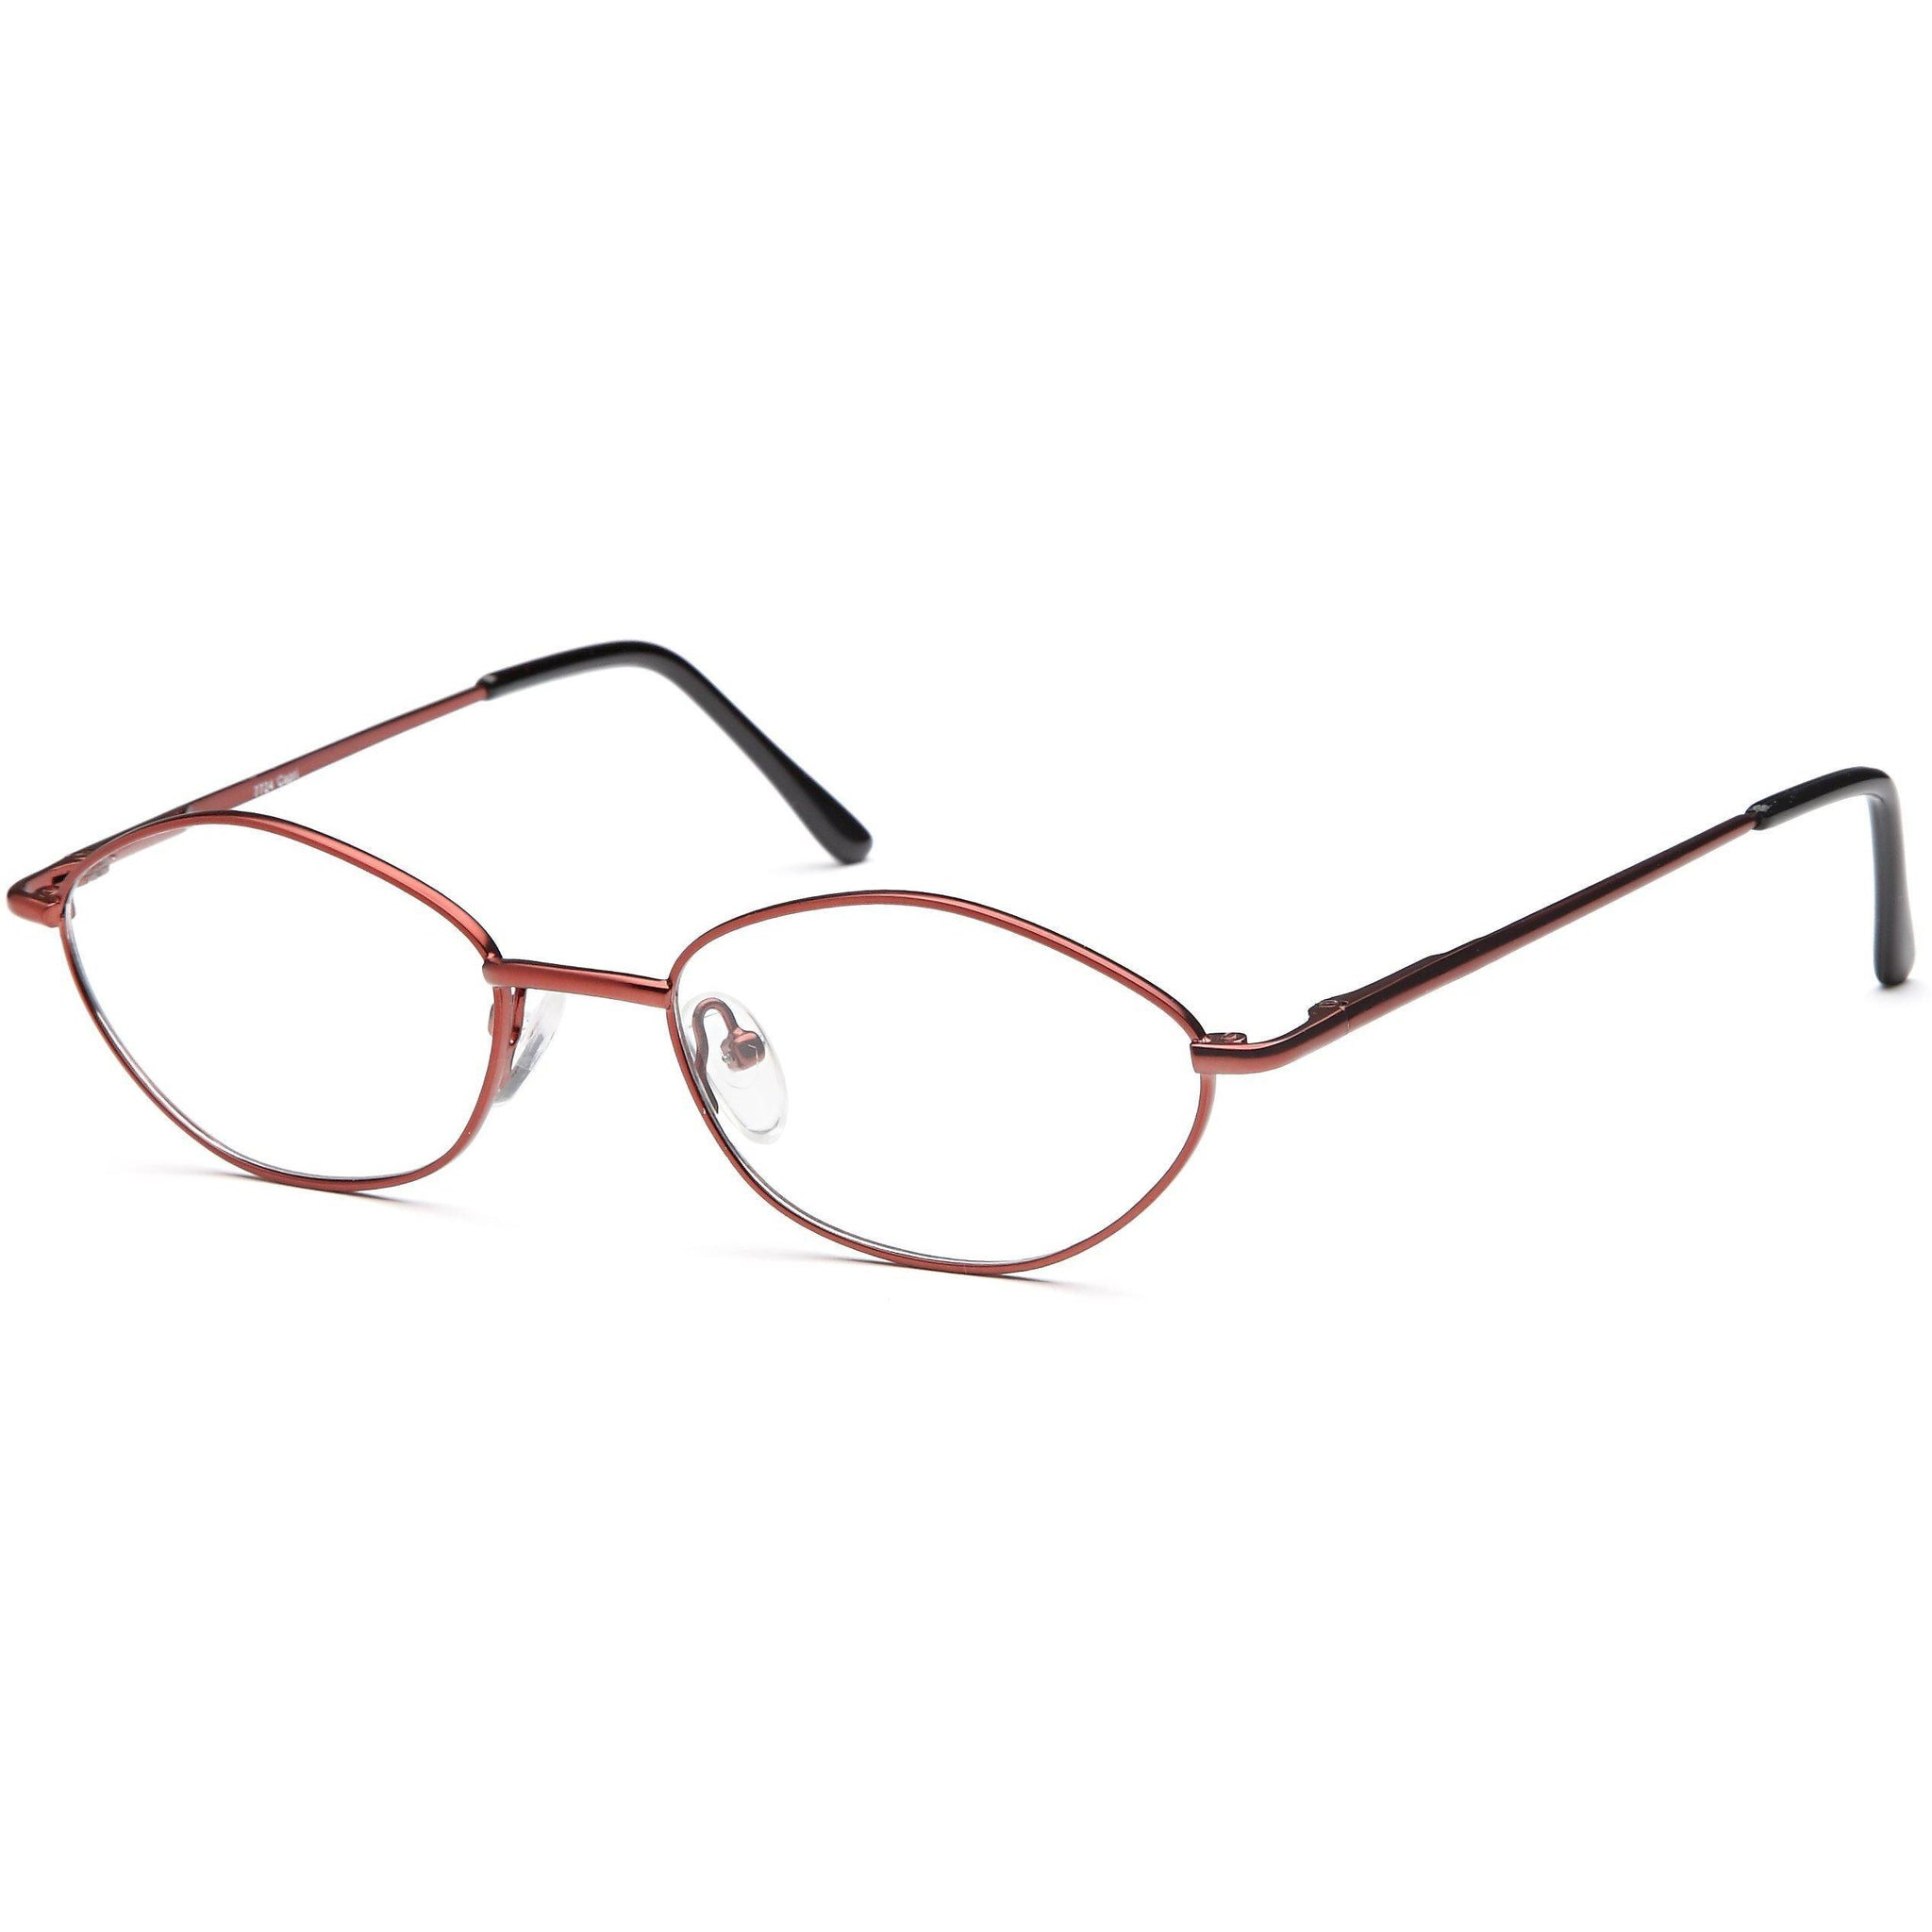 Appletree Prescription Glasses 7724 Eyeglasses Frame